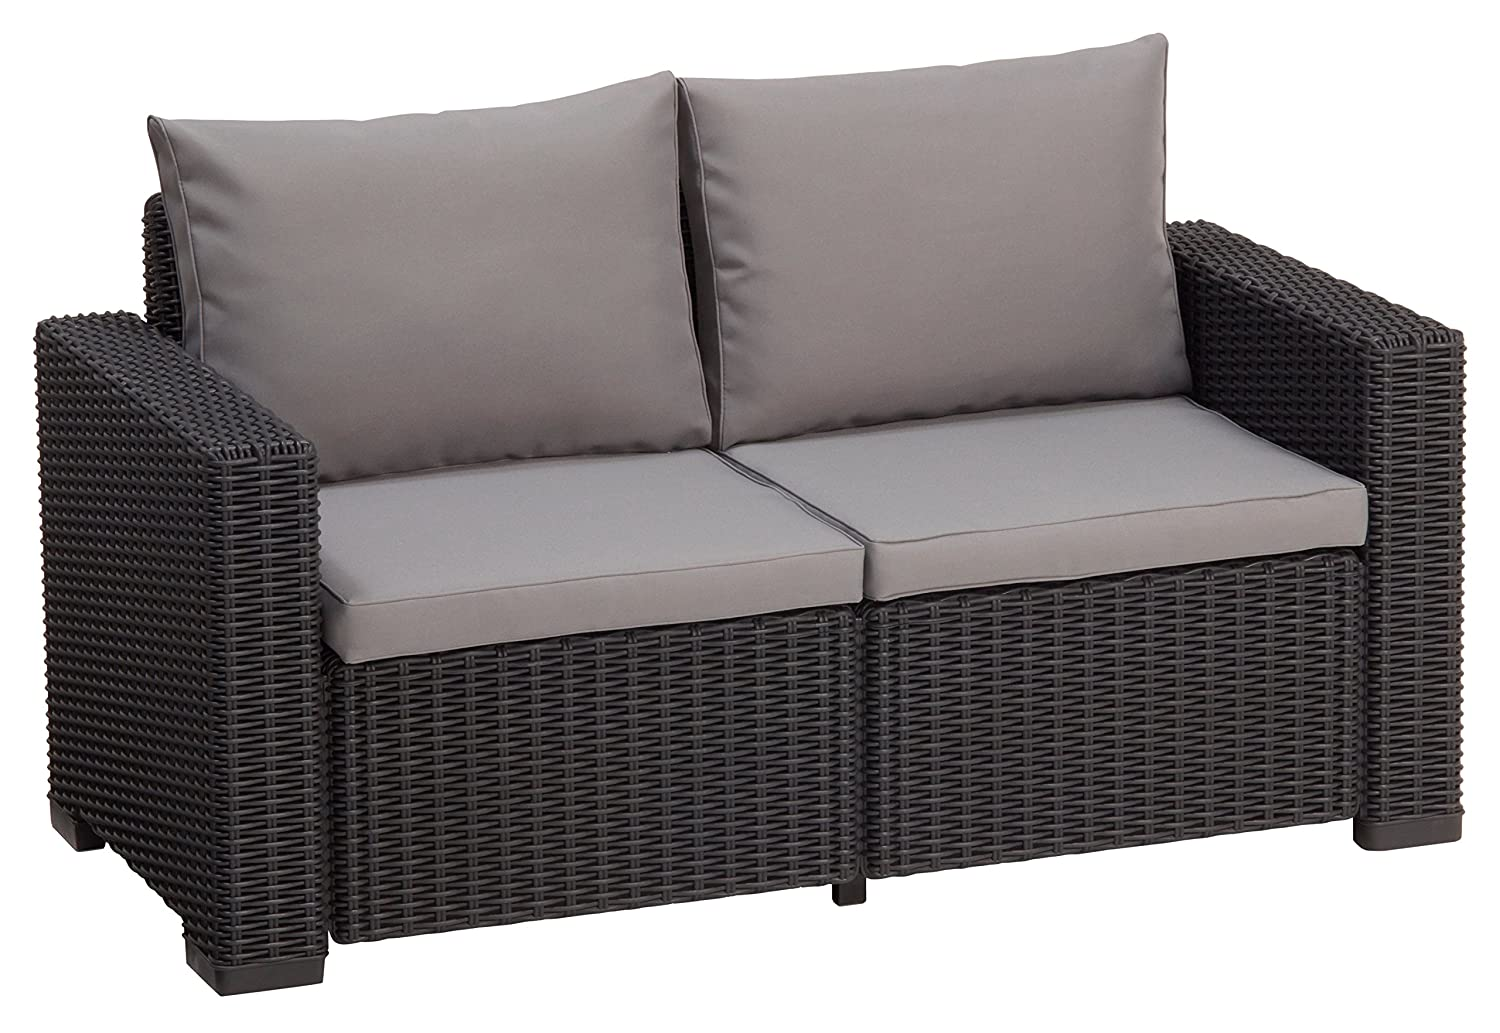 Lounge sofa  Amazon.de: Allibert Lounge Sofa Rattan, Lounge California Sofa ...